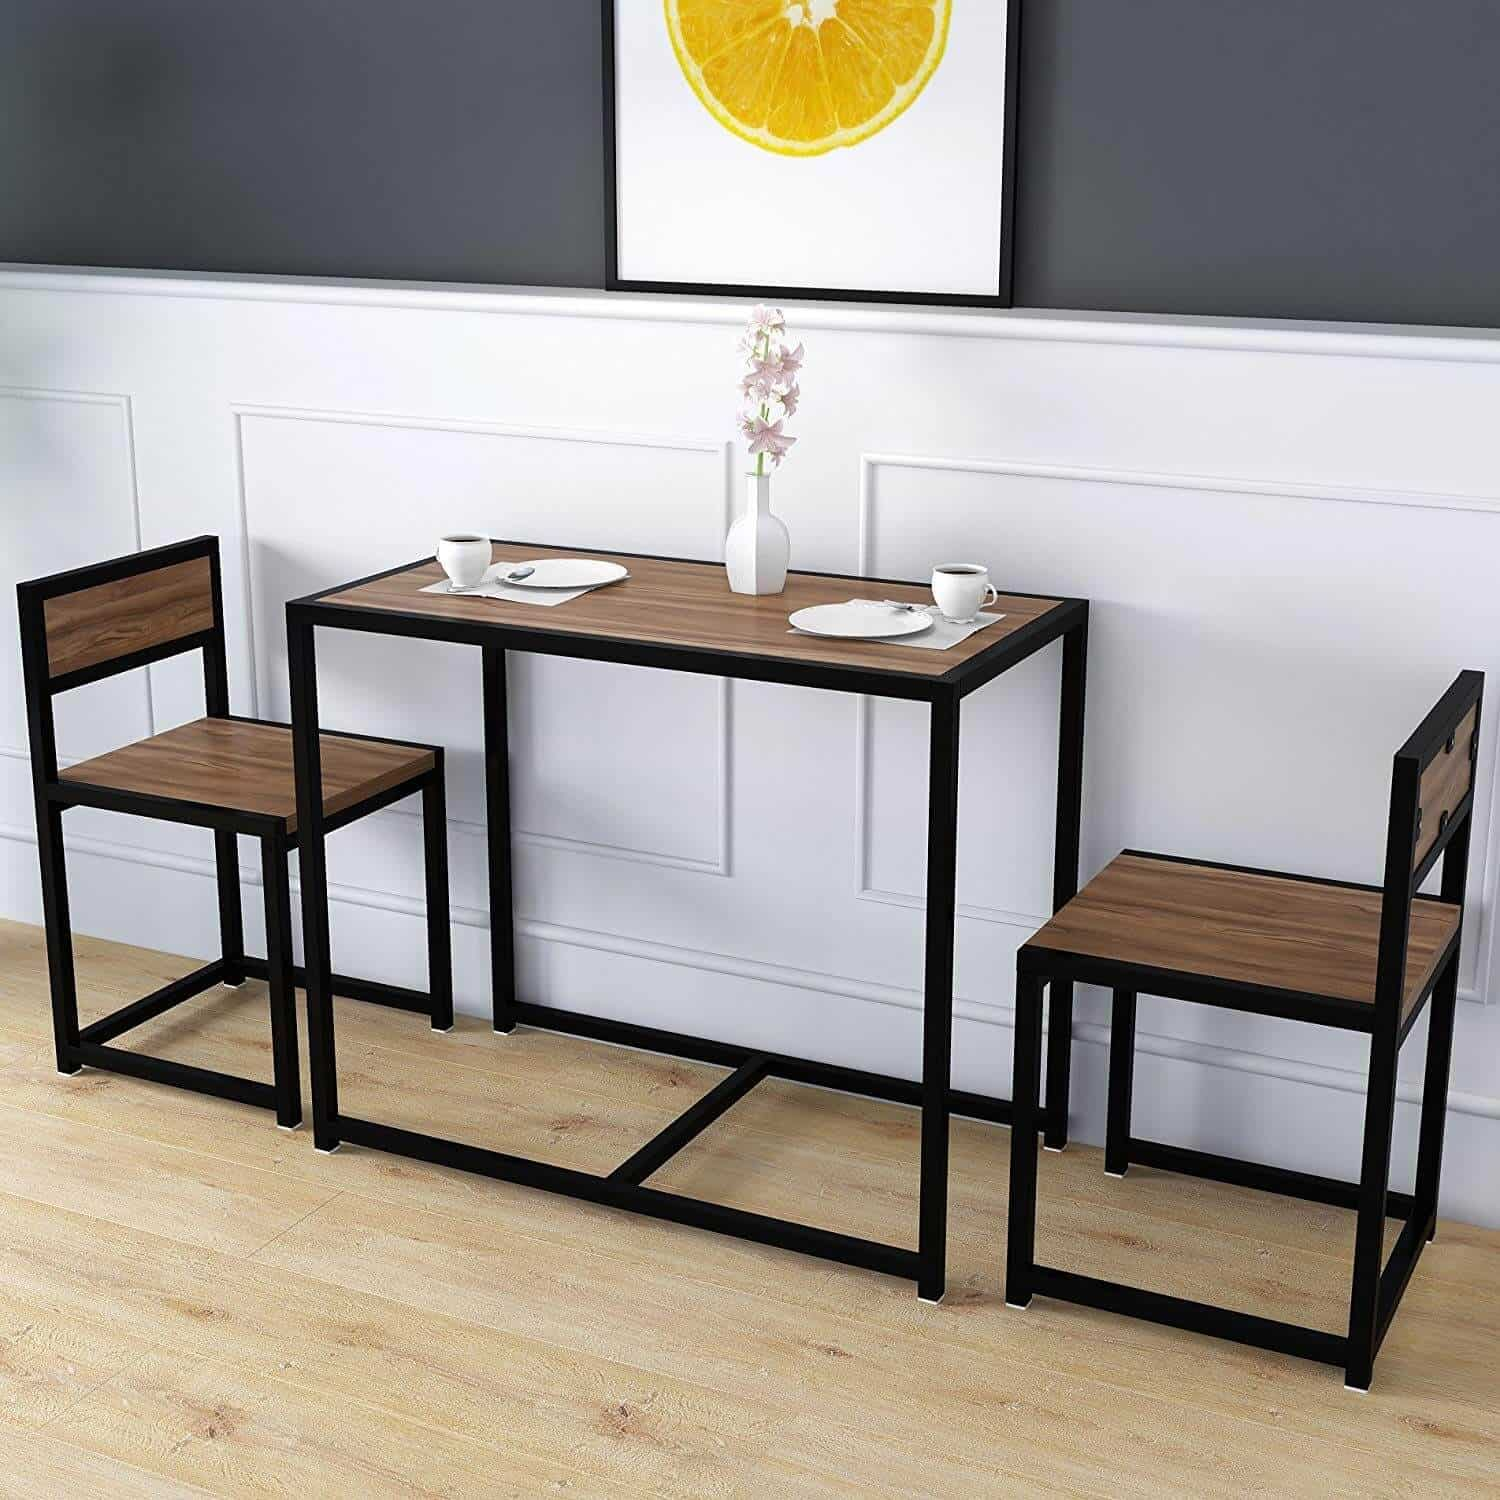 Small dining table for kitchen 17